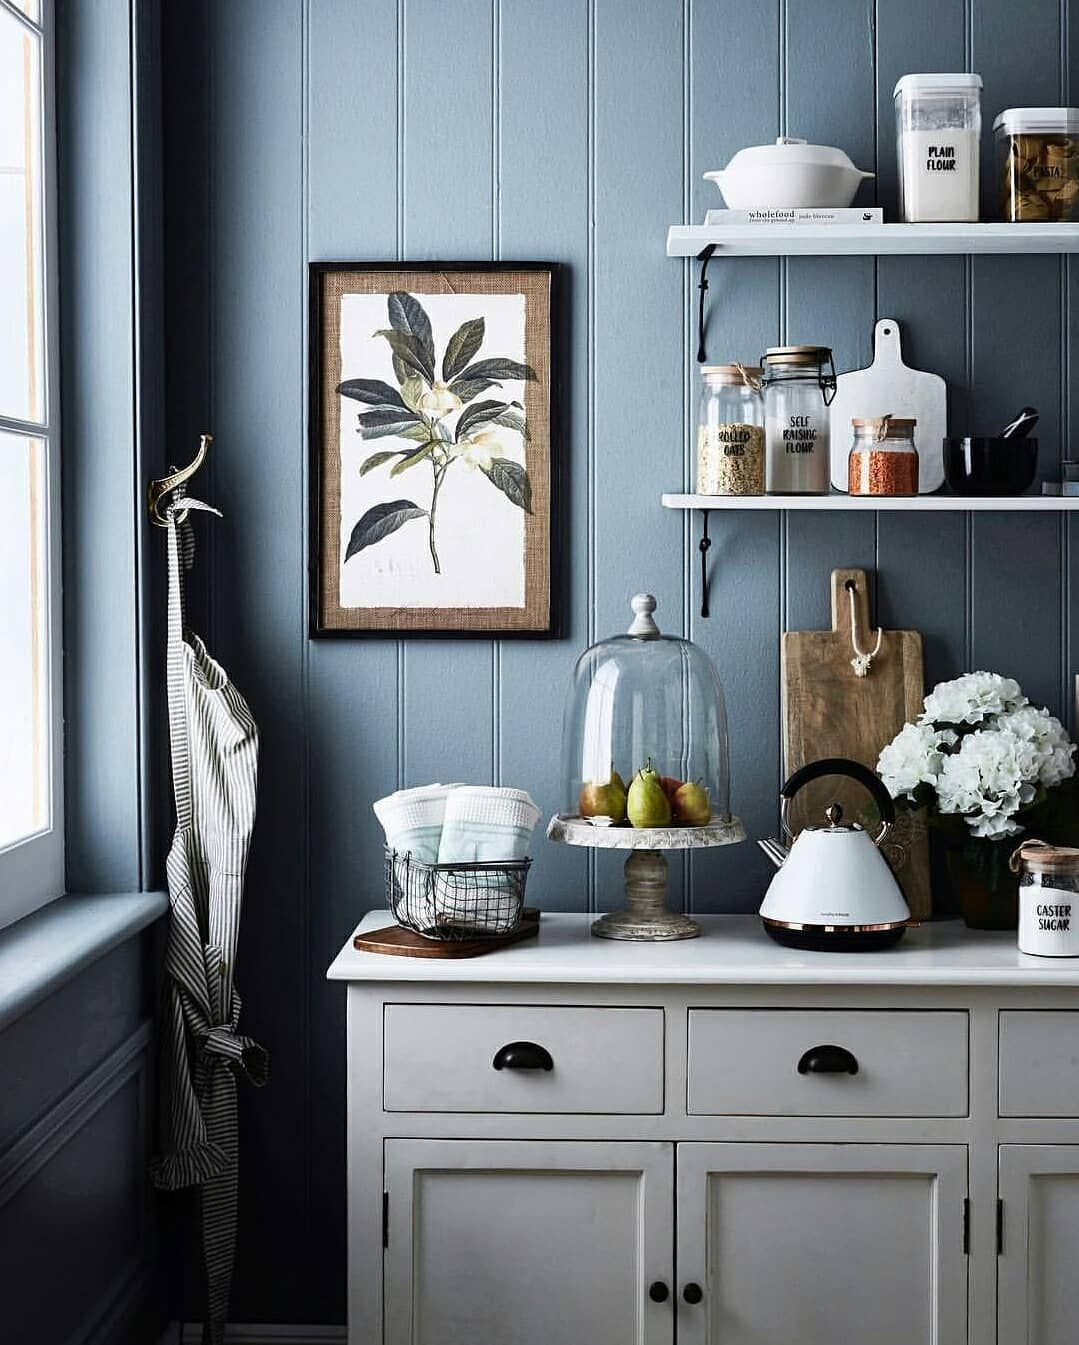 Porter S Paints On Instagram Newport Blue In Eggshell Looking Dreamy In This Kitchen Scene Styled By In 2020 Porter Paint Blue Kitchen Paint Porter Paint Colors